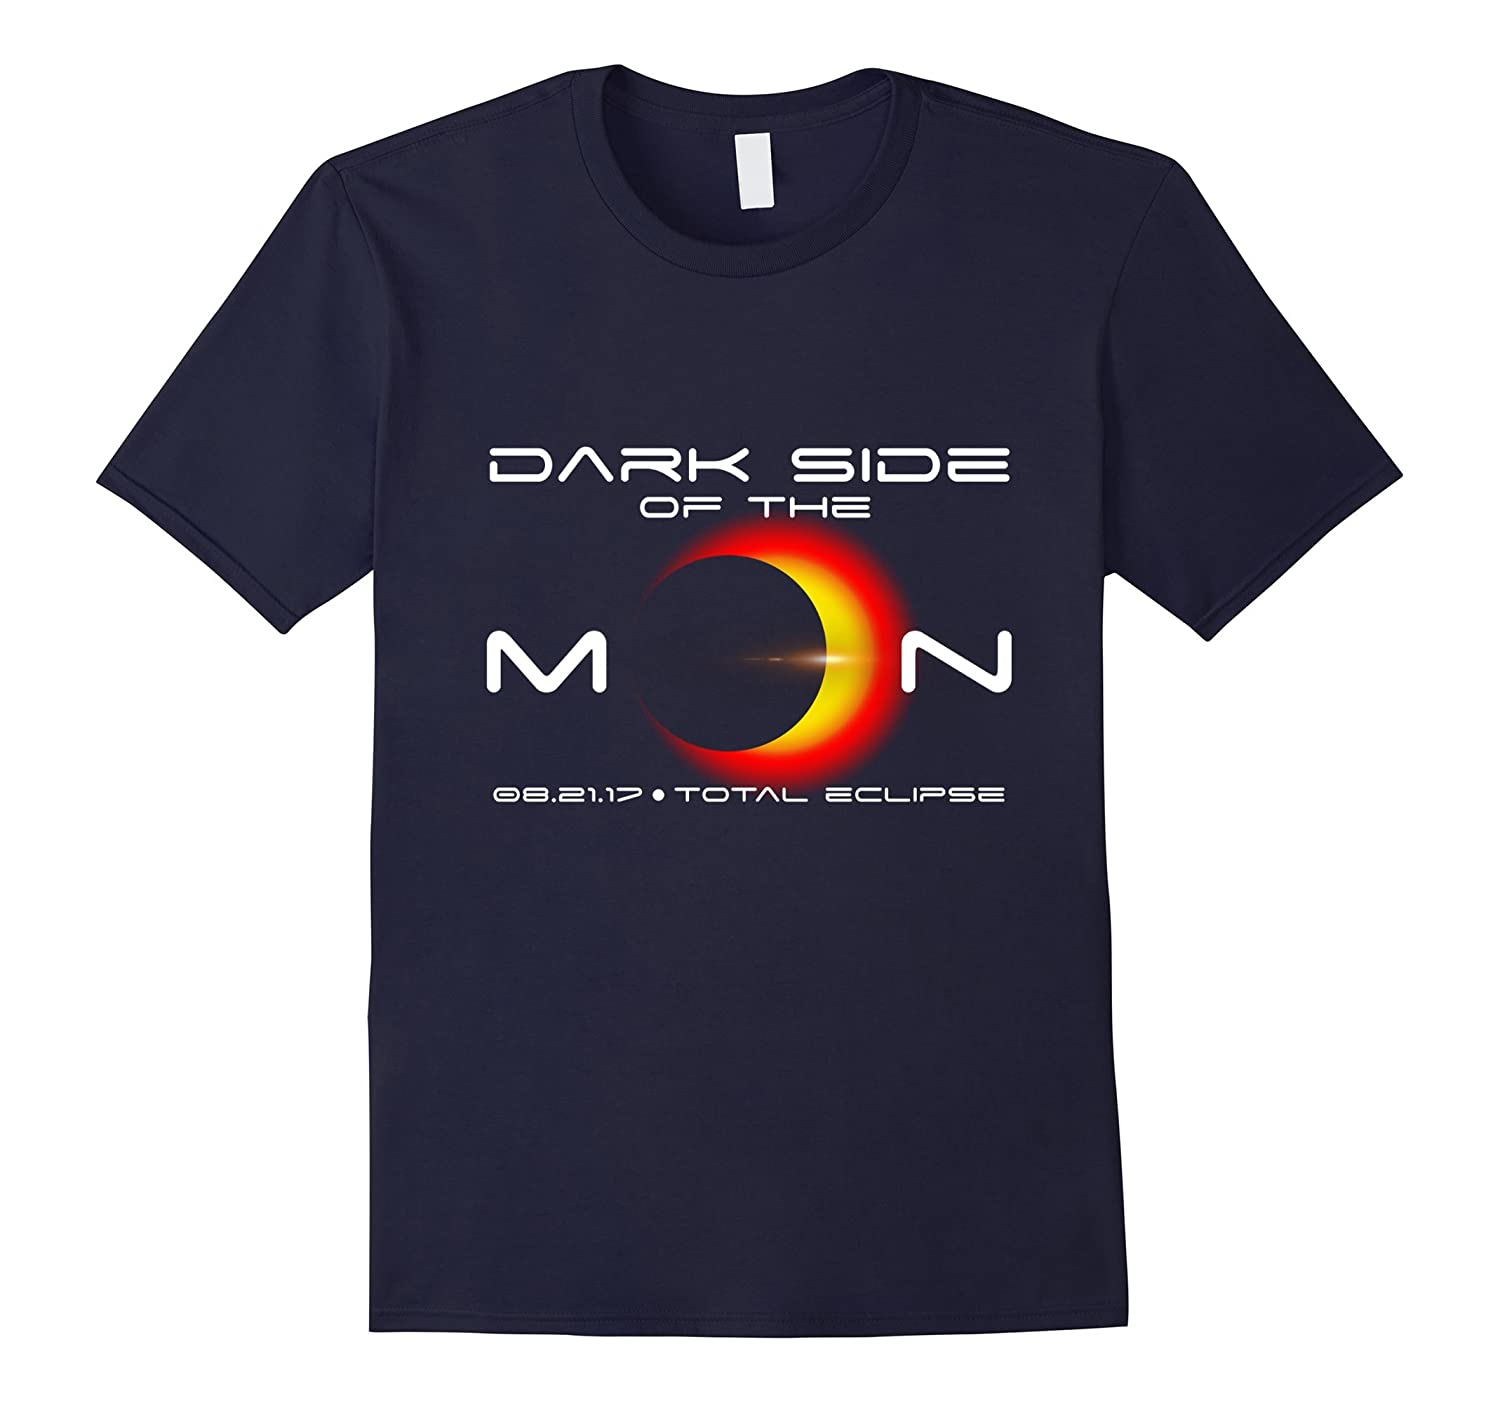 Total Solar Eclipse T Shirt August 21 2017 Dark Side of Moon-BN